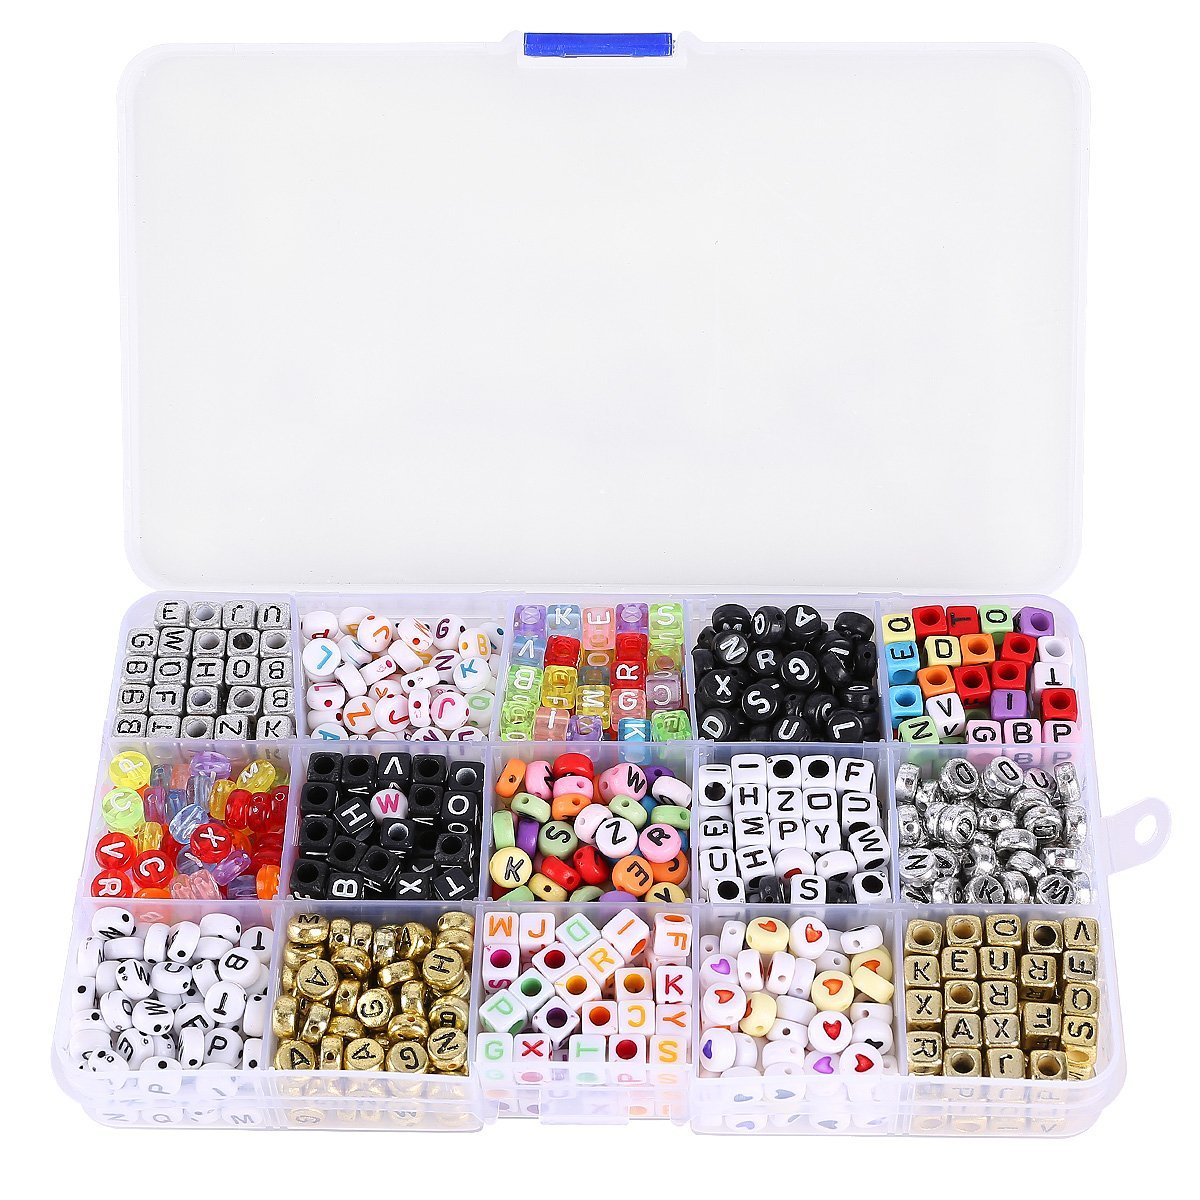 A Box of 1100pcs Mixed Acrylic Alphabet Letters Beads Cube Charms for DIY Loom Bands Bracelets